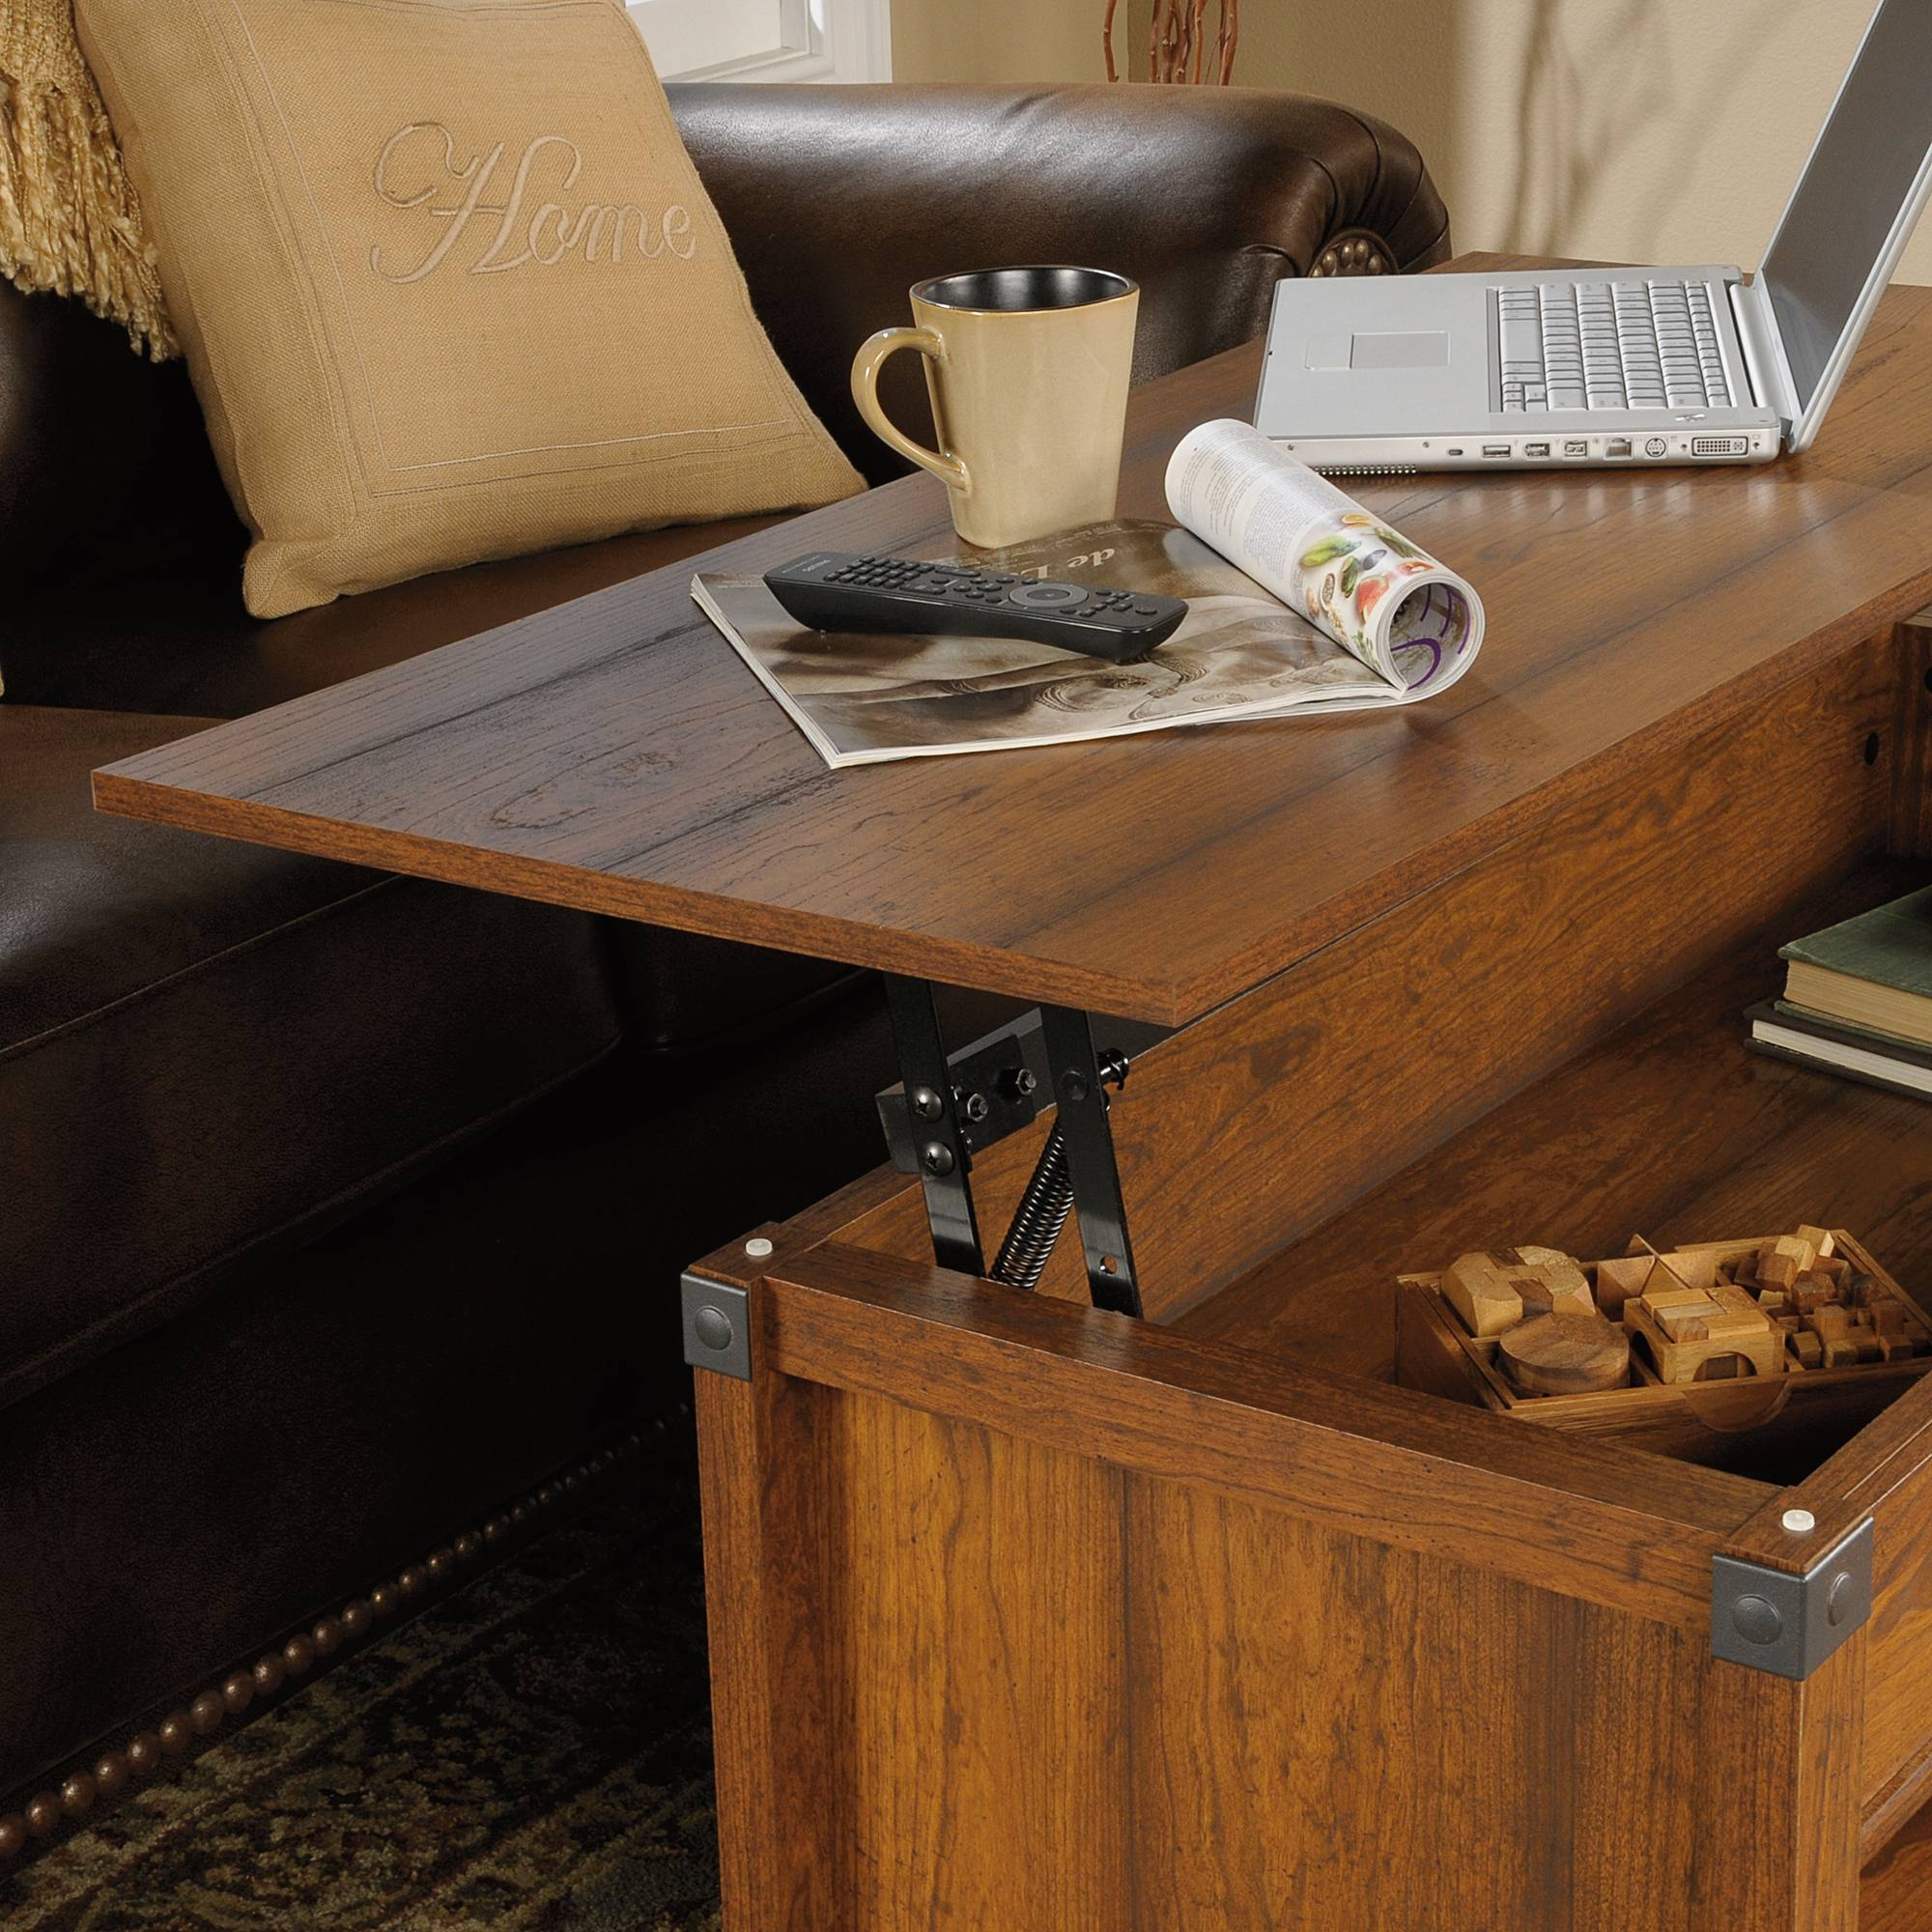 Carson Forge | Lift-Top Coffee Table | 414444 | Sauder inside Coffee Tables With Lift Top and Storage (Image 1 of 14)